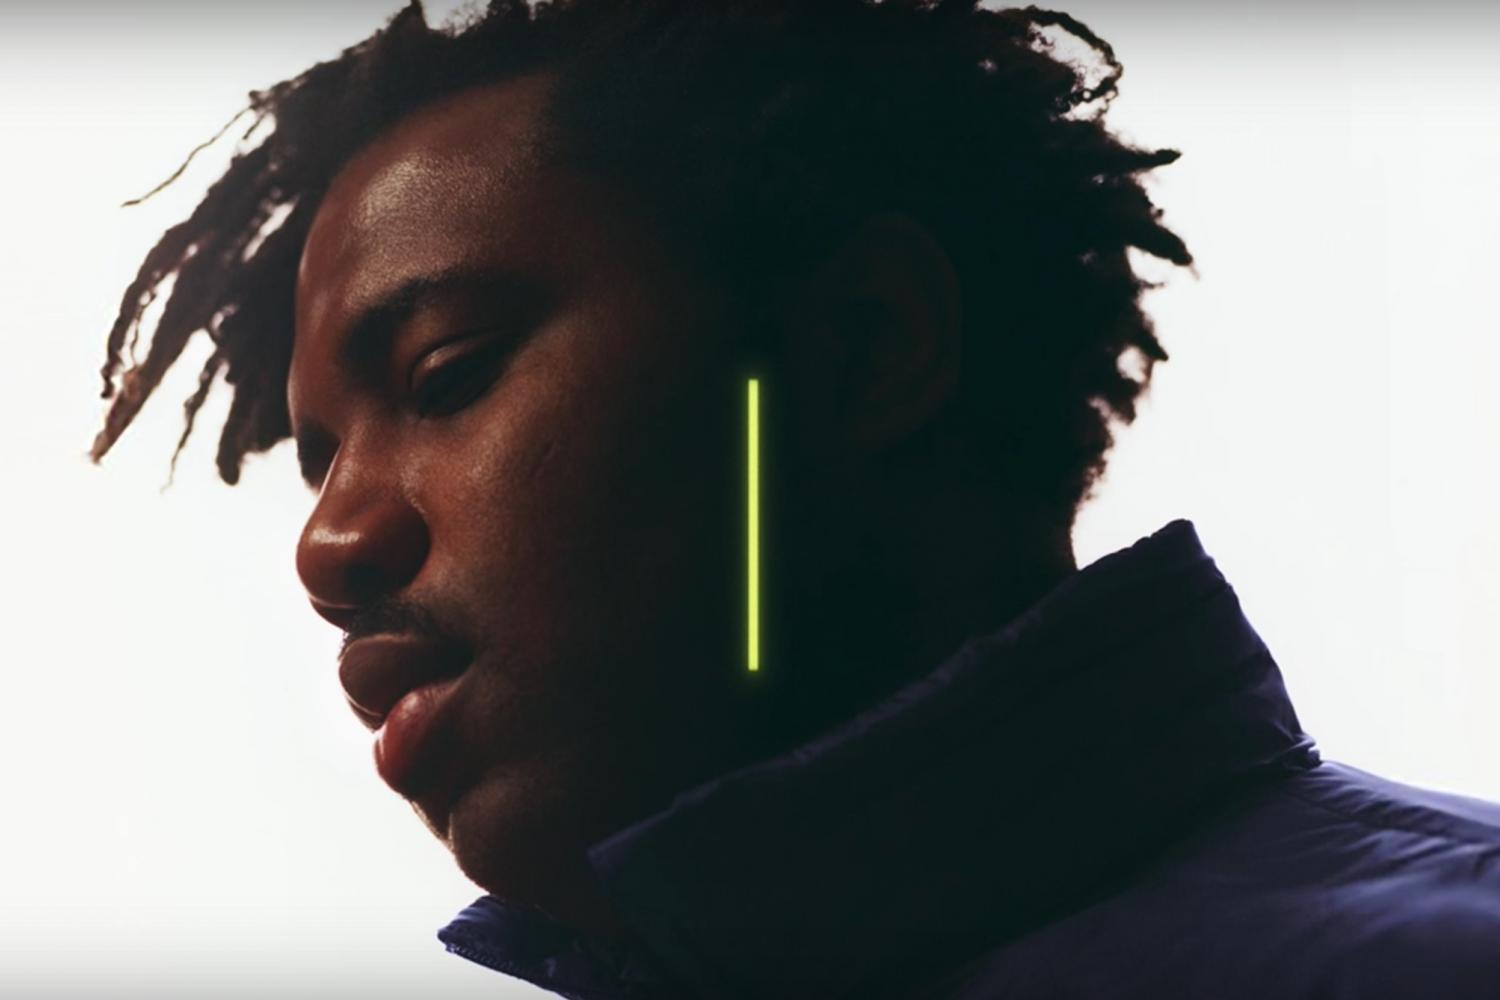 Listen To Sampha's Emotional (No One Knows Me) 'Like The Piano' Song sampha 2016